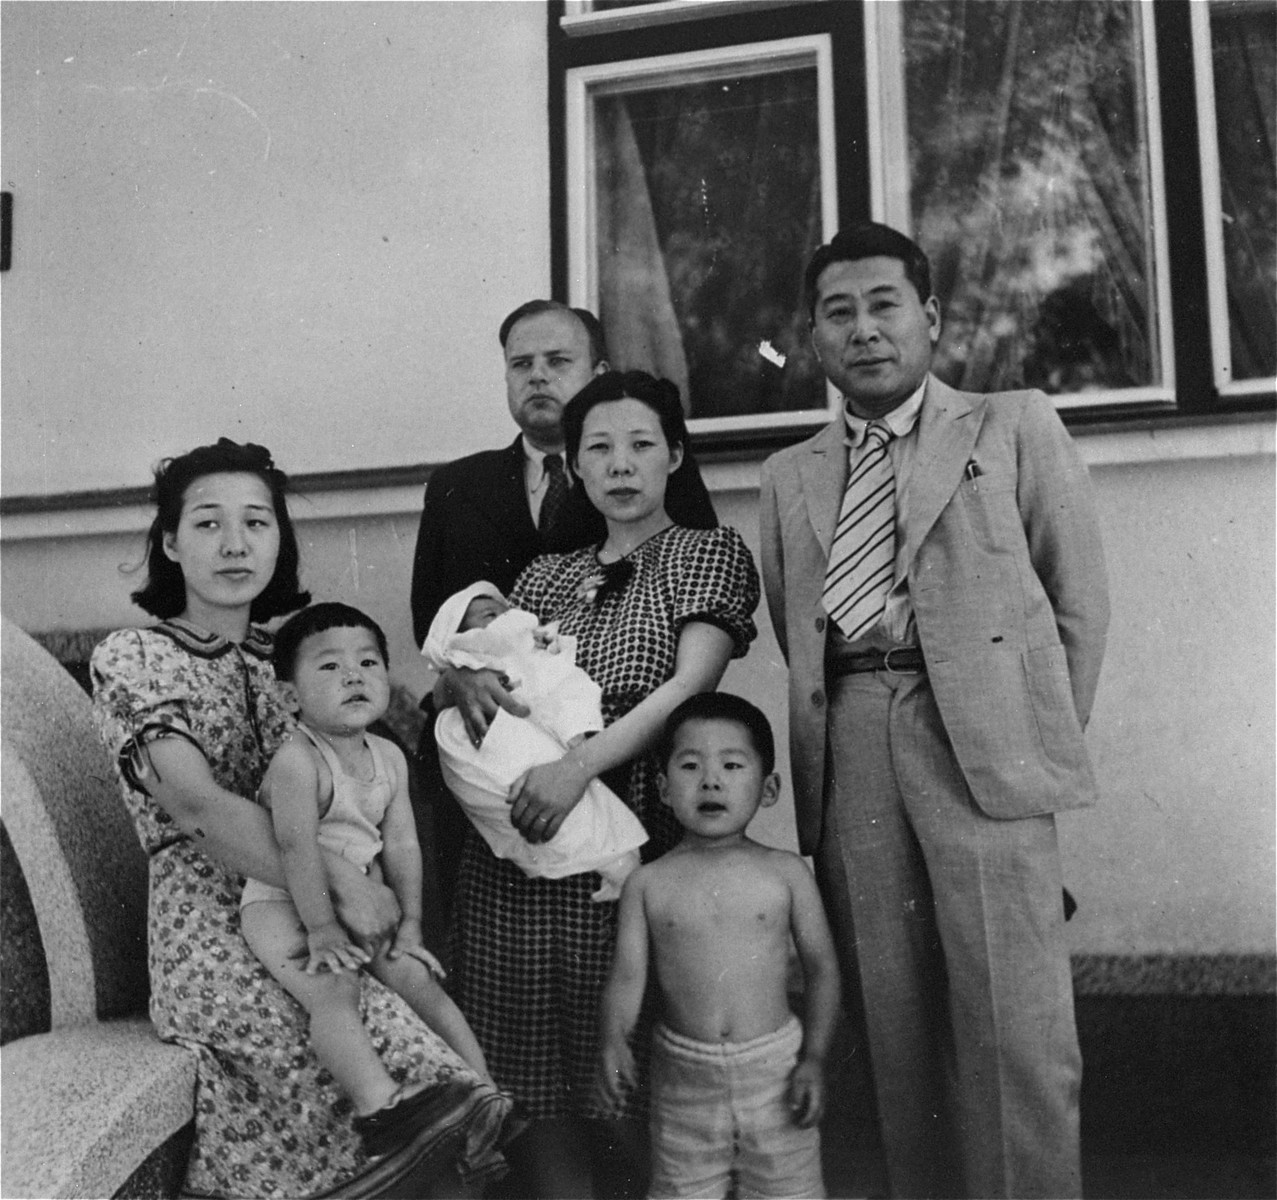 The Sugihara family poses in front of the Japanese consulate in Kaunas.    Yukiko Sugihara is carrying her newborn son, Haruki.  Behind them is the window from which the family watched Jewish refugees from Poland gather to wait for Japanese transit visas.